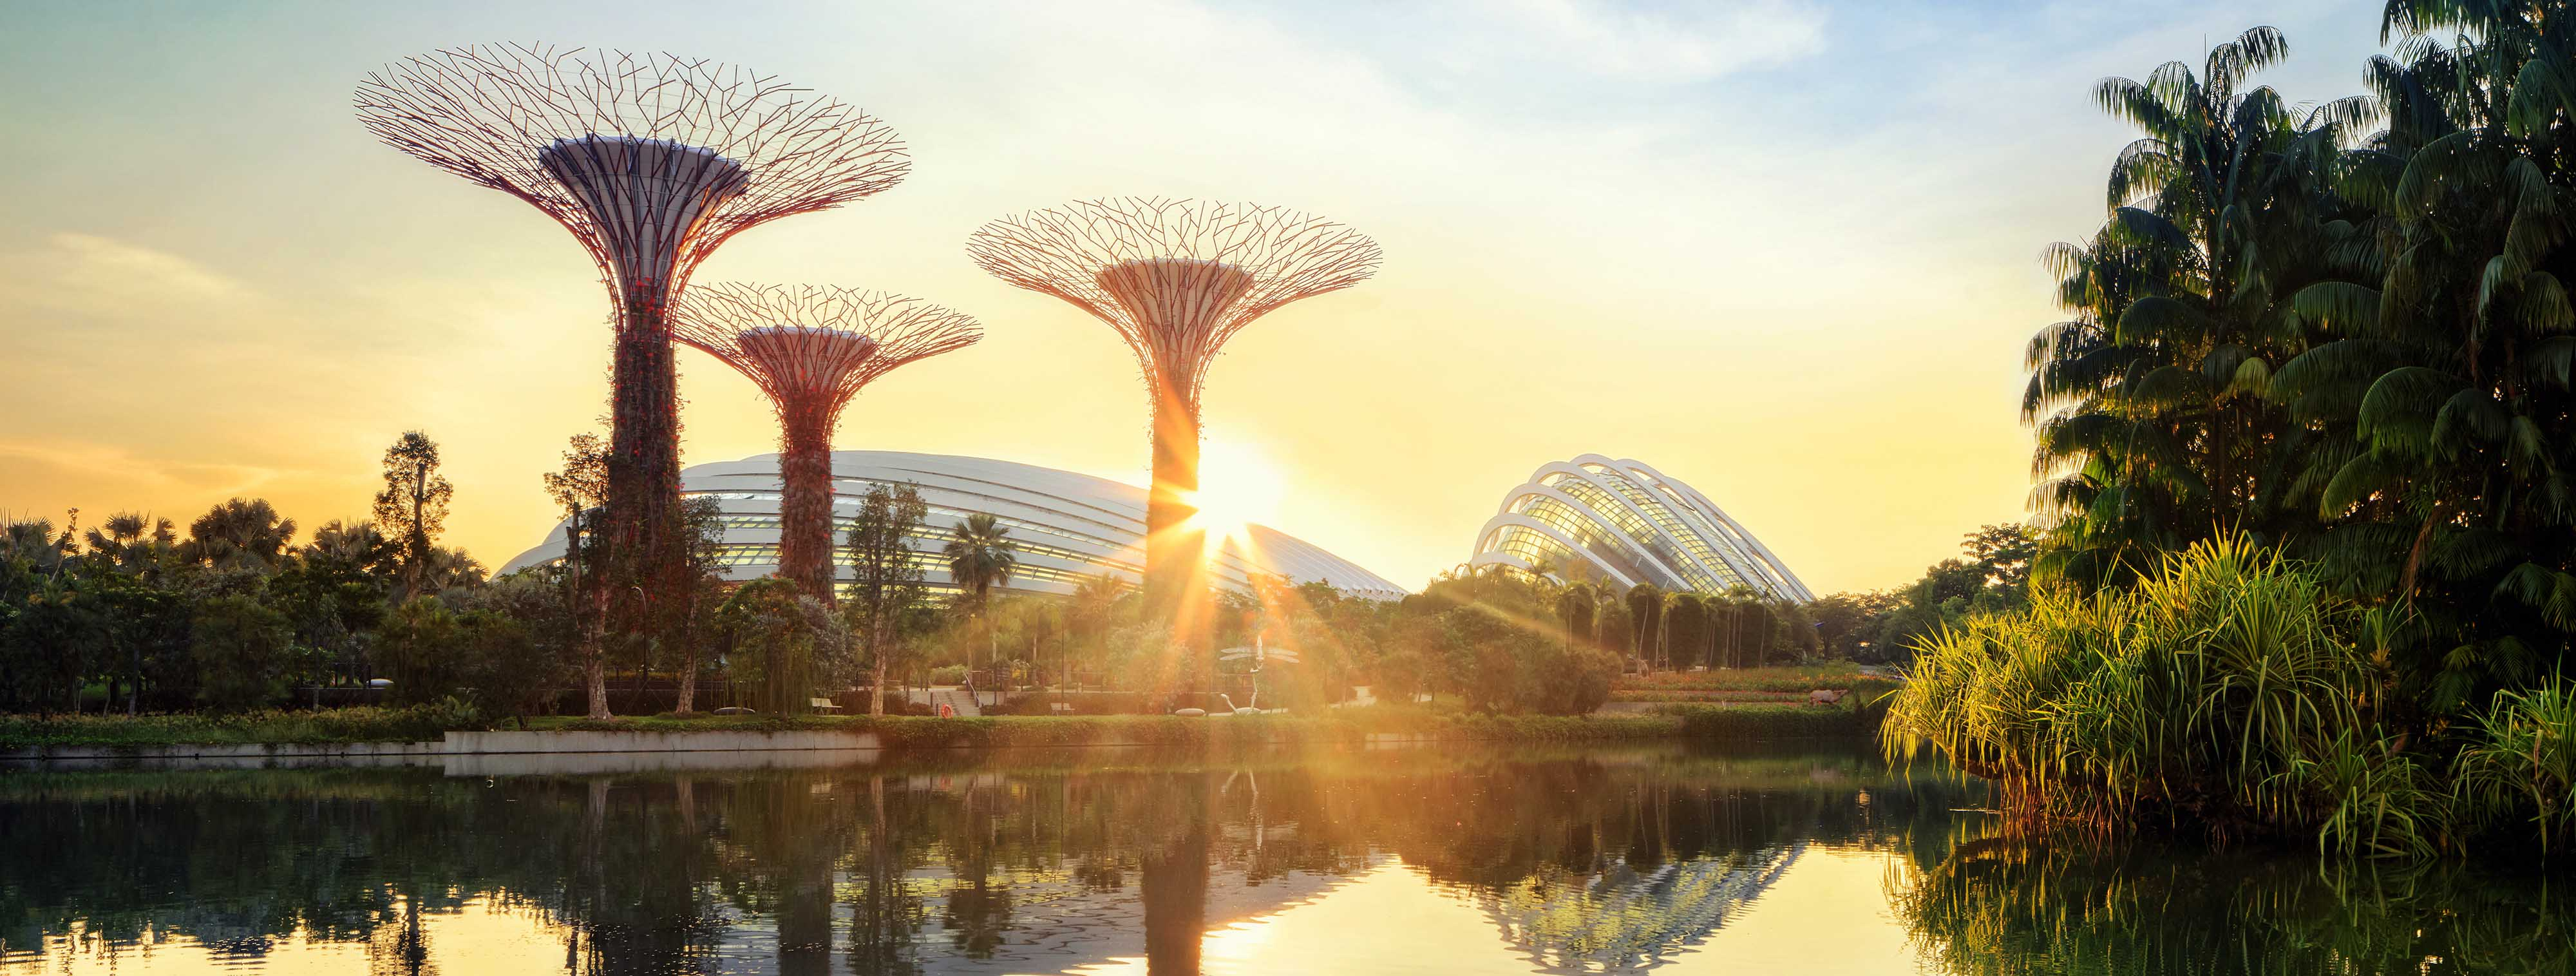 Supertree grove and Cloud garden greenhouse at sunrise